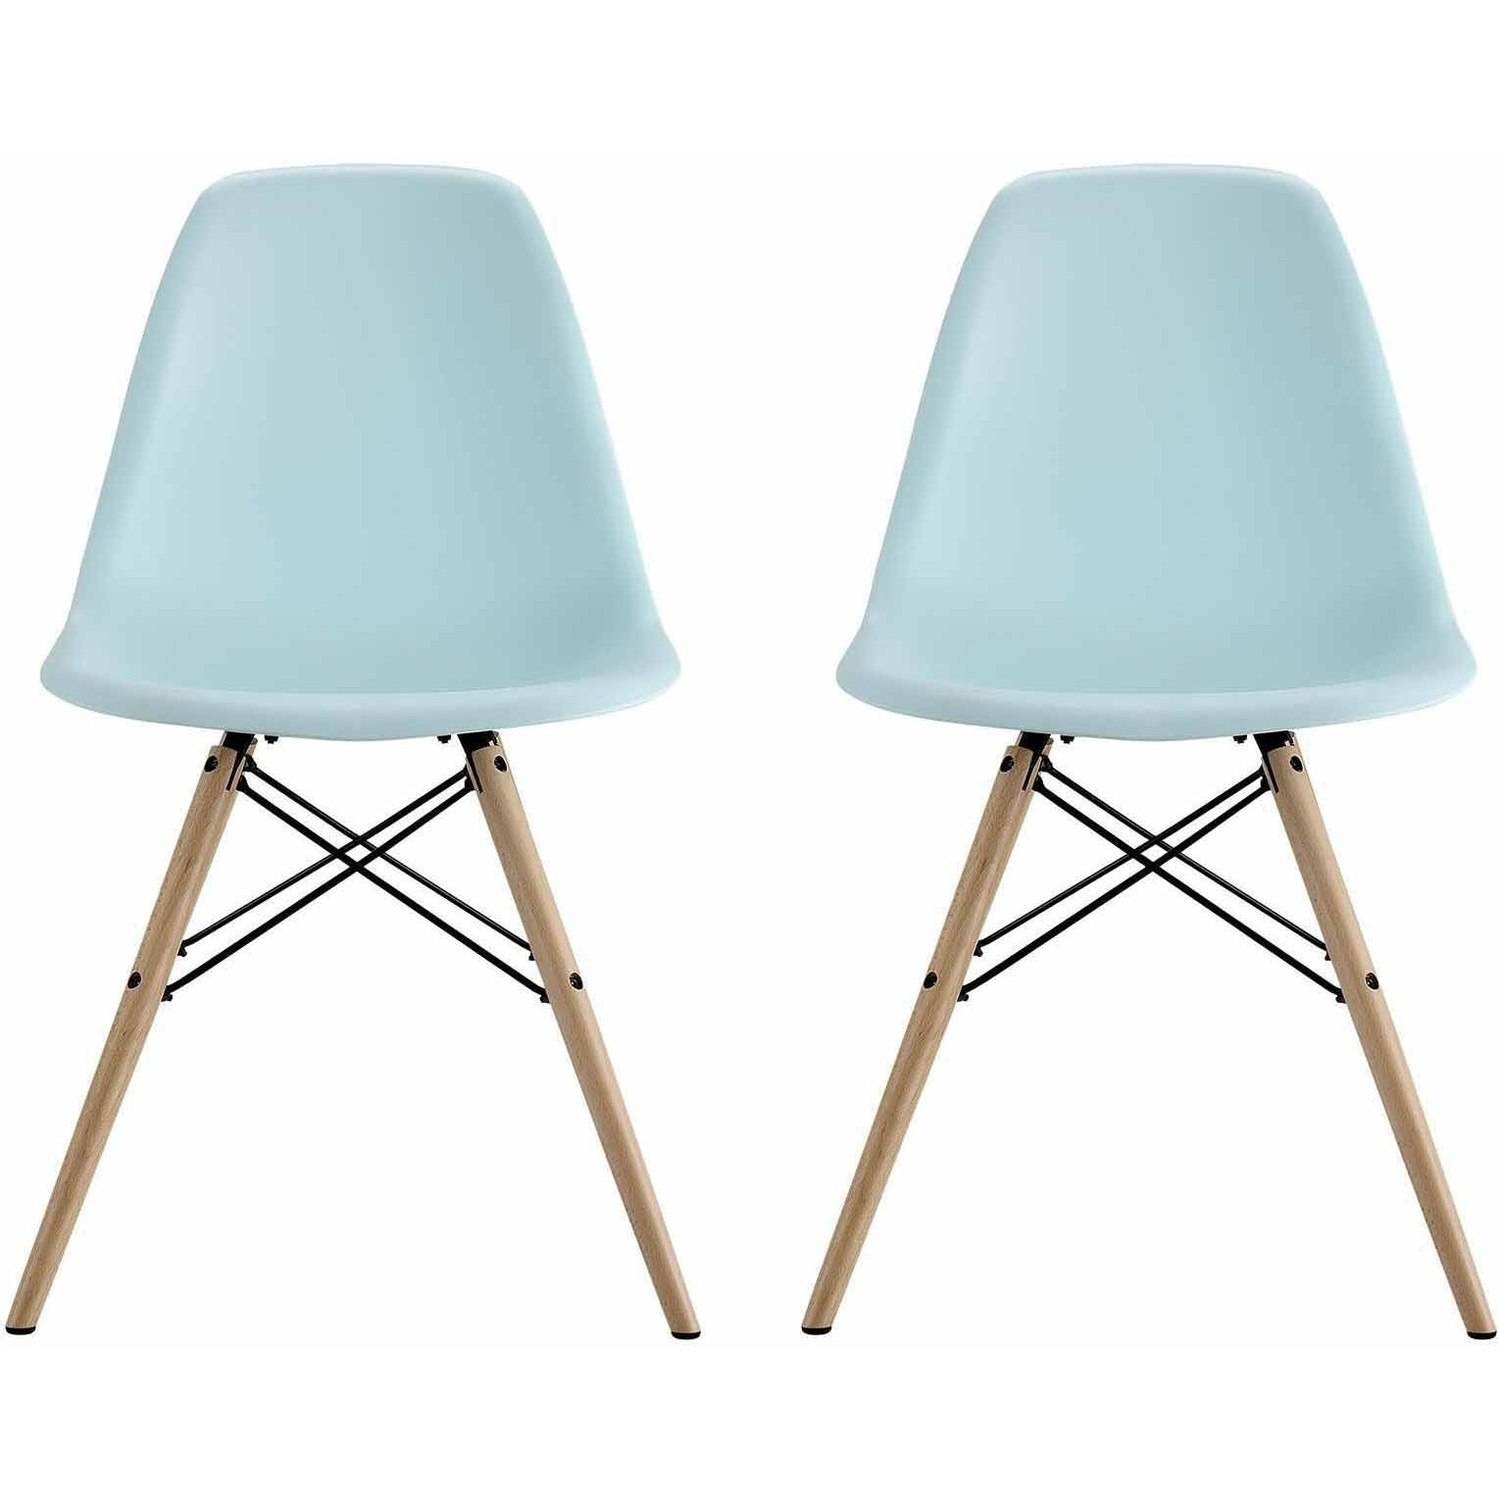 dhp mid century modern molded chair with wood leg set of 2 blue ebay